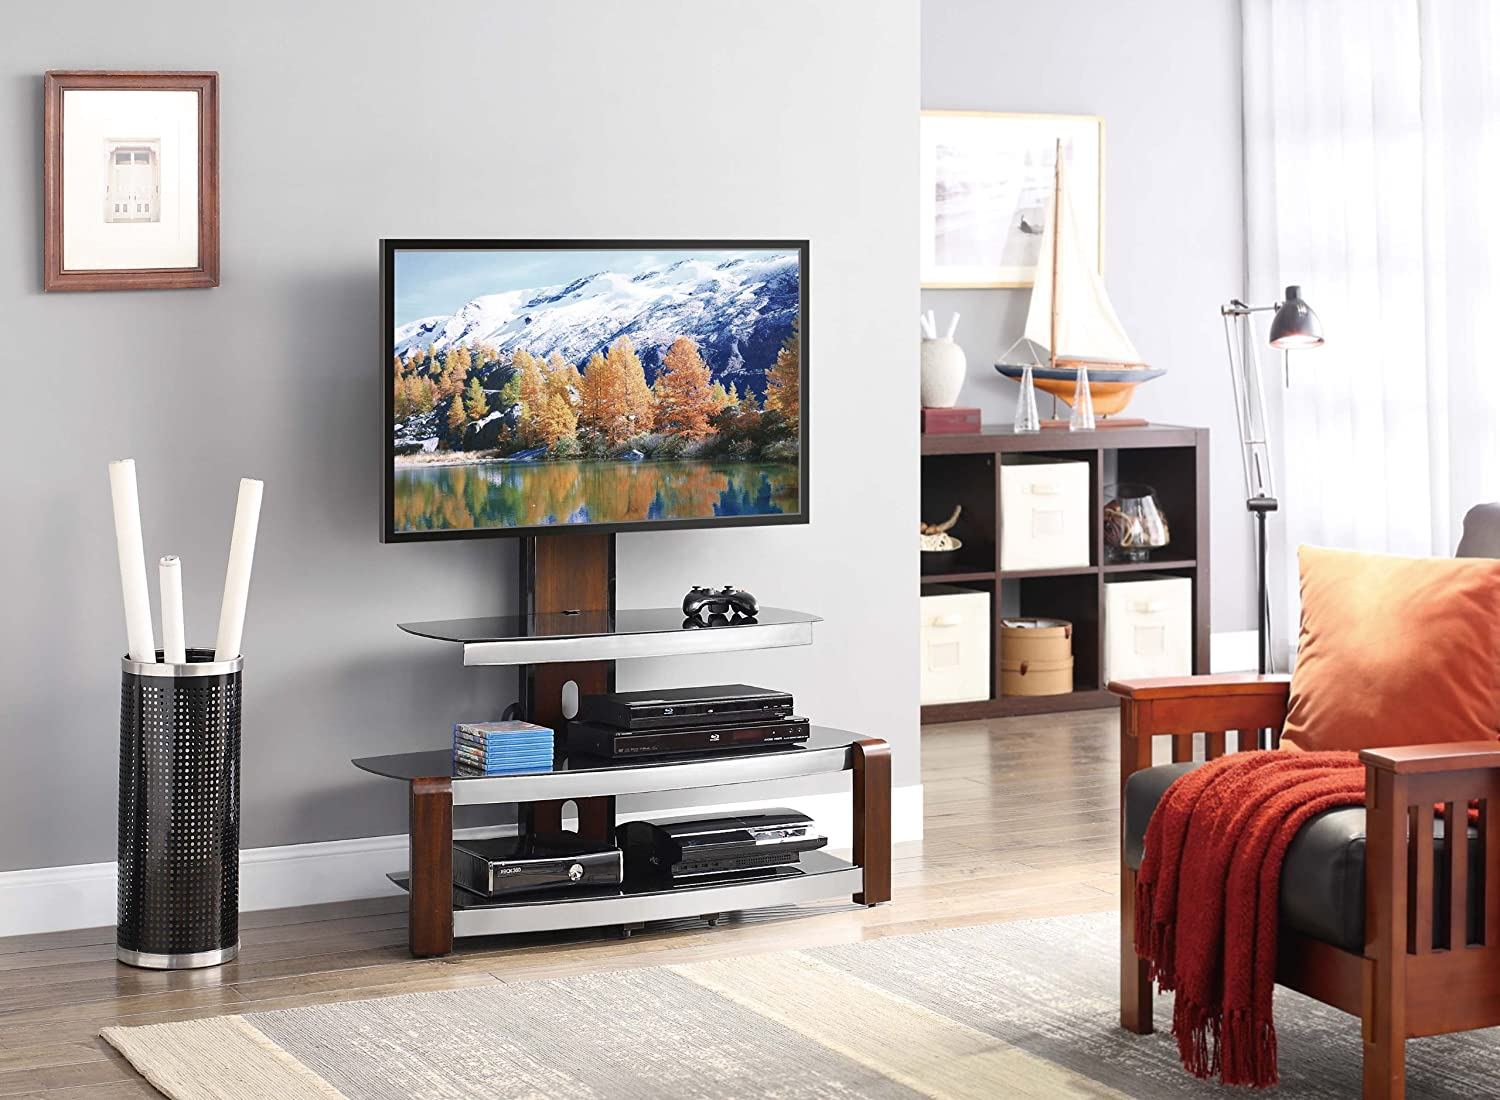 The 5 Best TV Stands In 2018: Reviews & Buying Guide 4